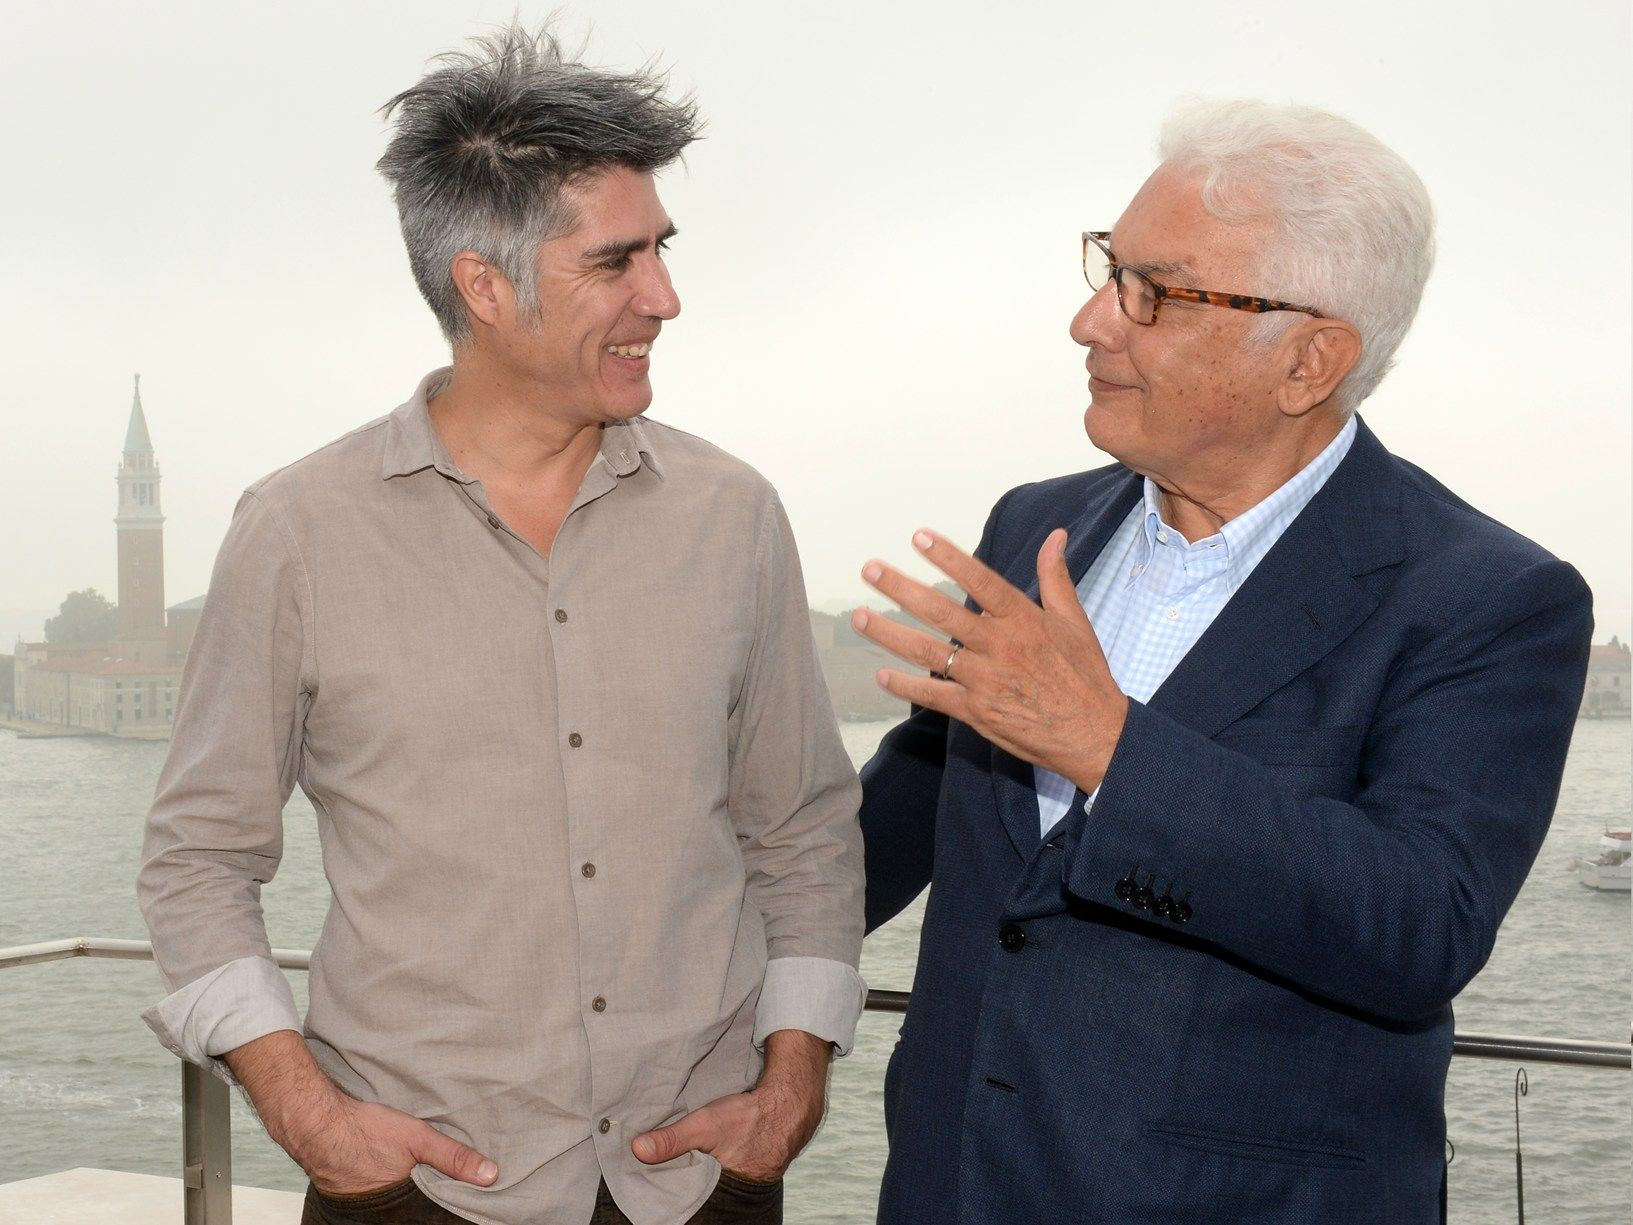 Alejandro Aravena and Paolo Baratta - Photo by Giorgio Zucchiatti Courtesy of la Biennale di Venezia